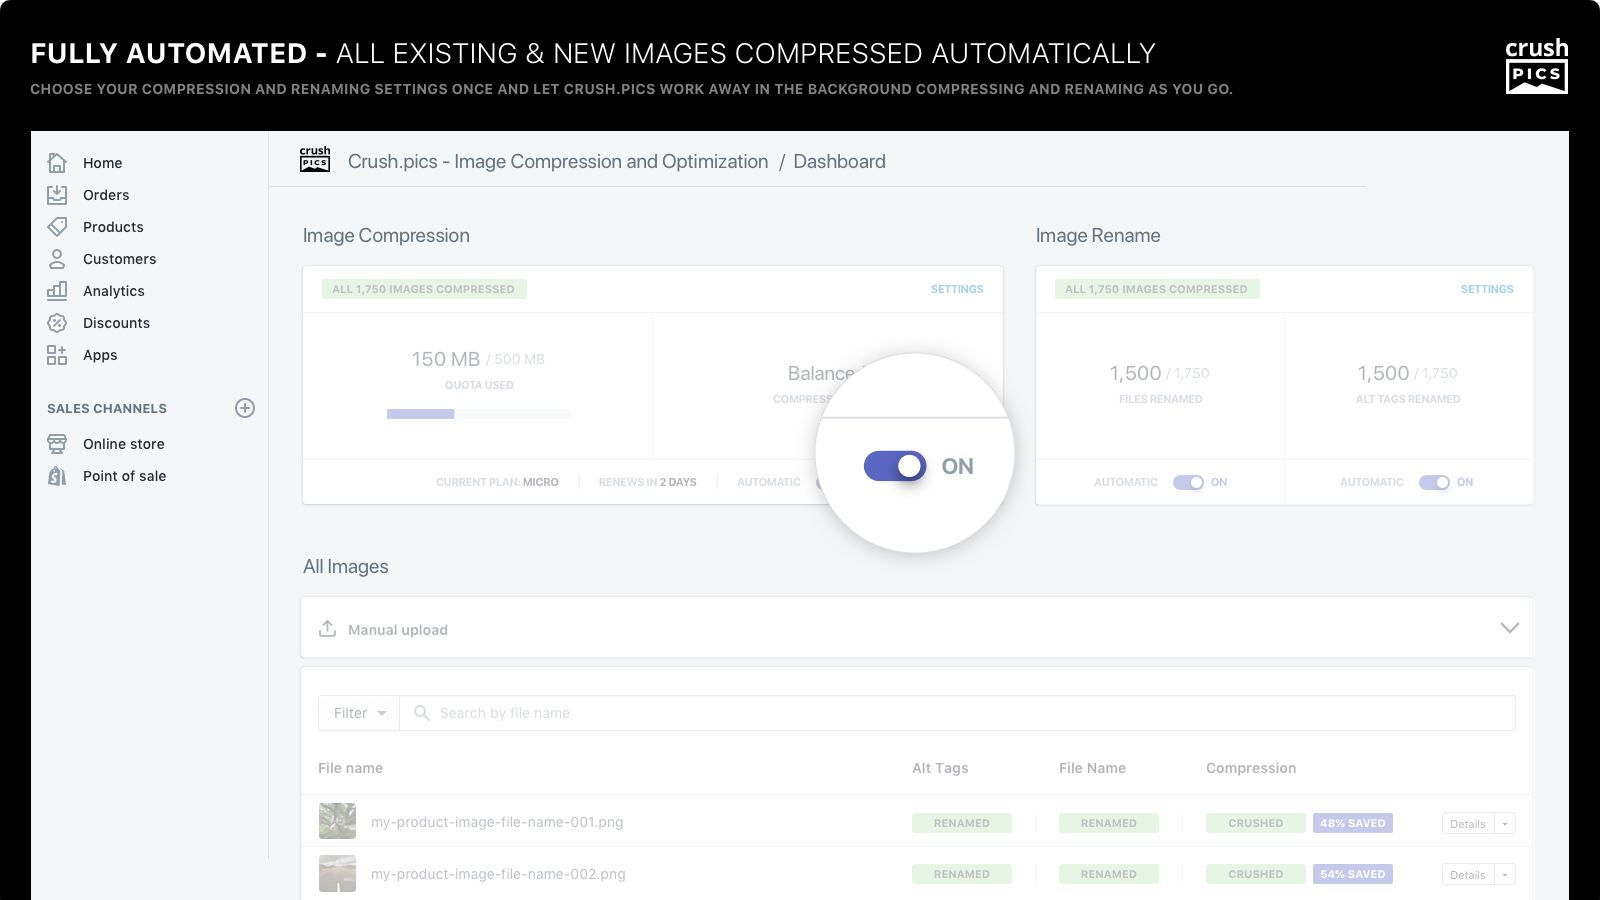 fully automated - all existing and new images compressed autom.